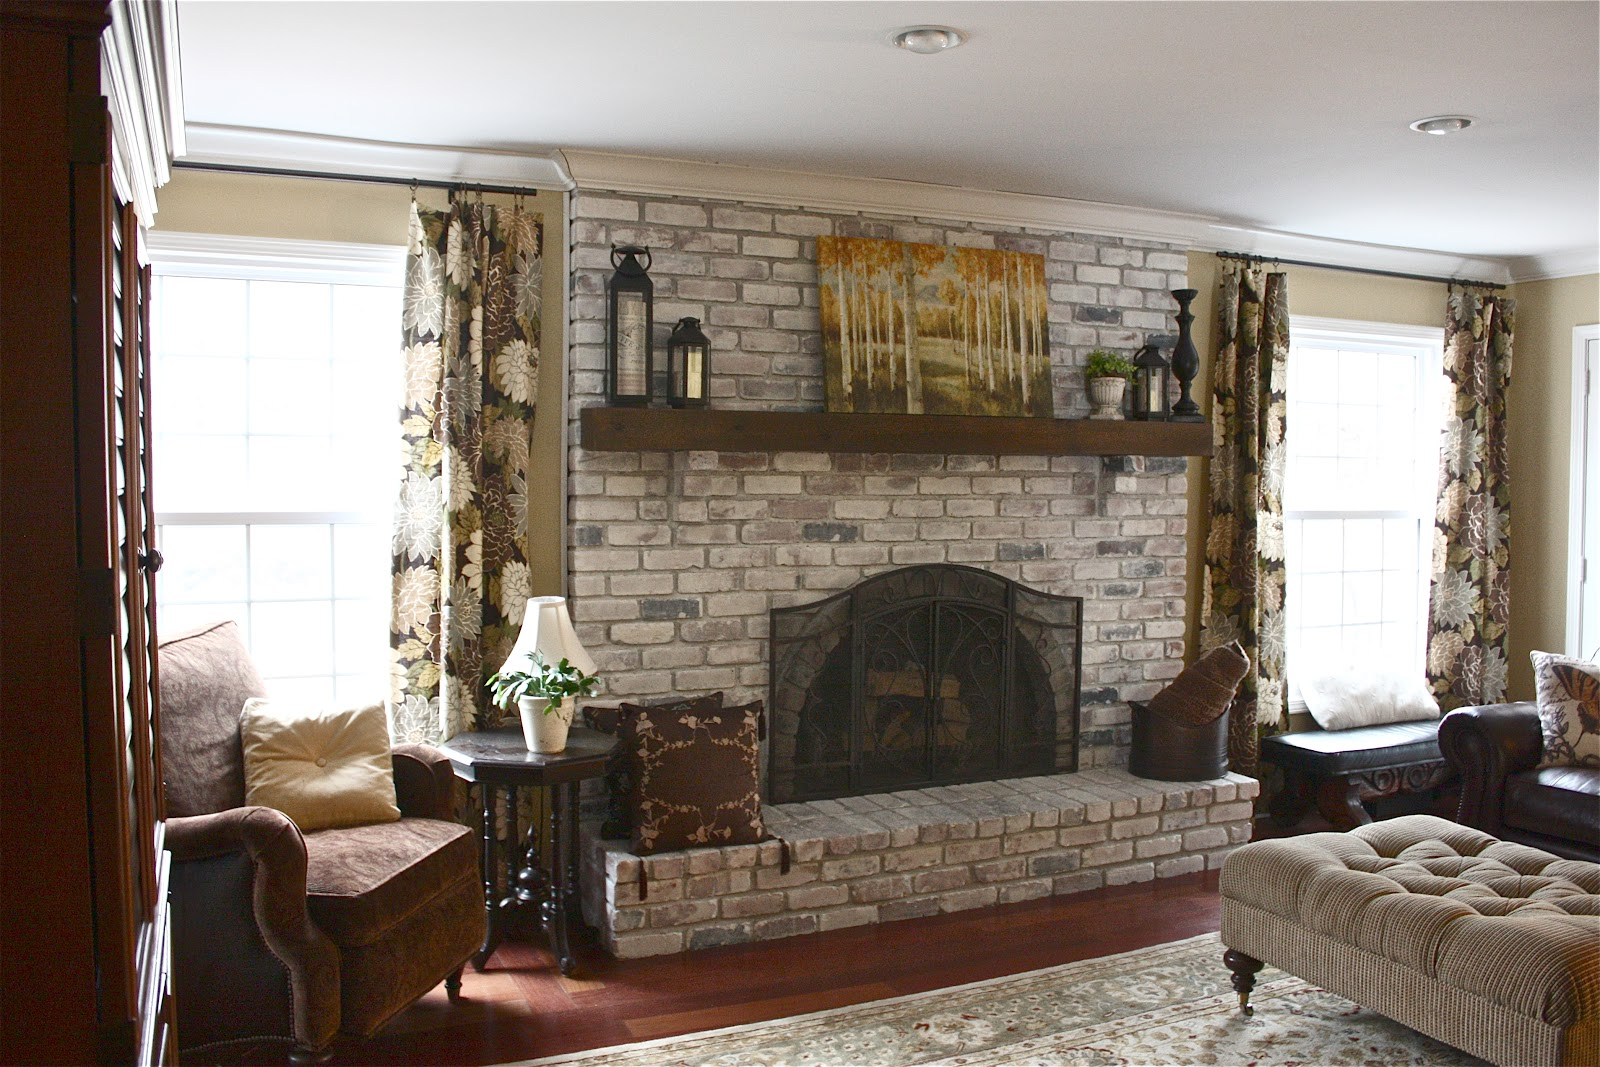 Whitewash Brick Fireplace 1600 x 1067